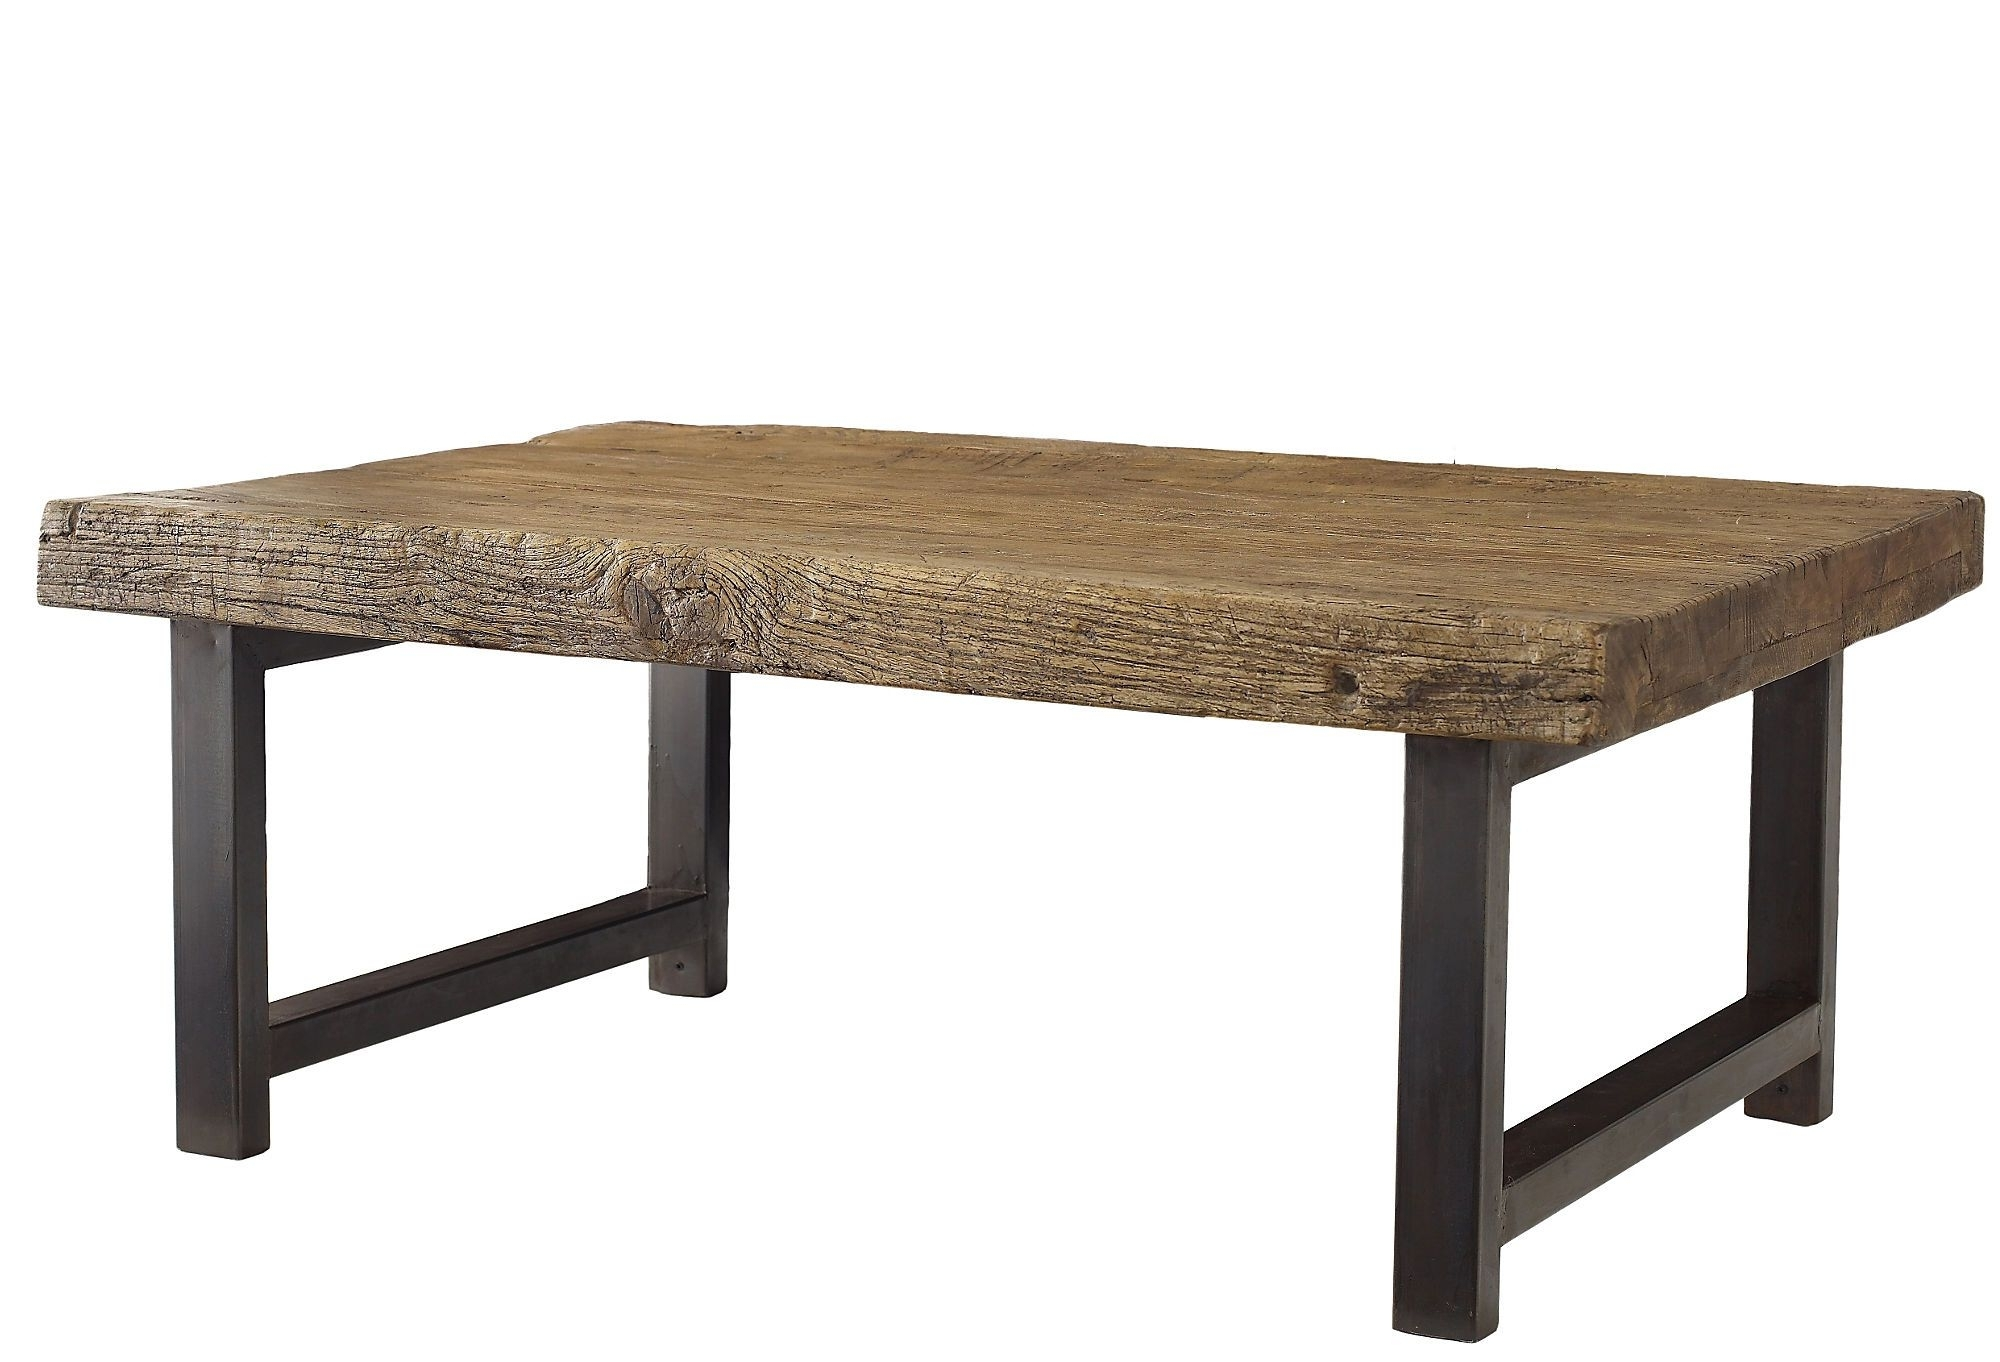 Well Known Reclaimed Elm Iron Coffee Tables Regarding Weathered To Rustic Perfection, This Reclaimed Elm And Steel Table (View 18 of 20)